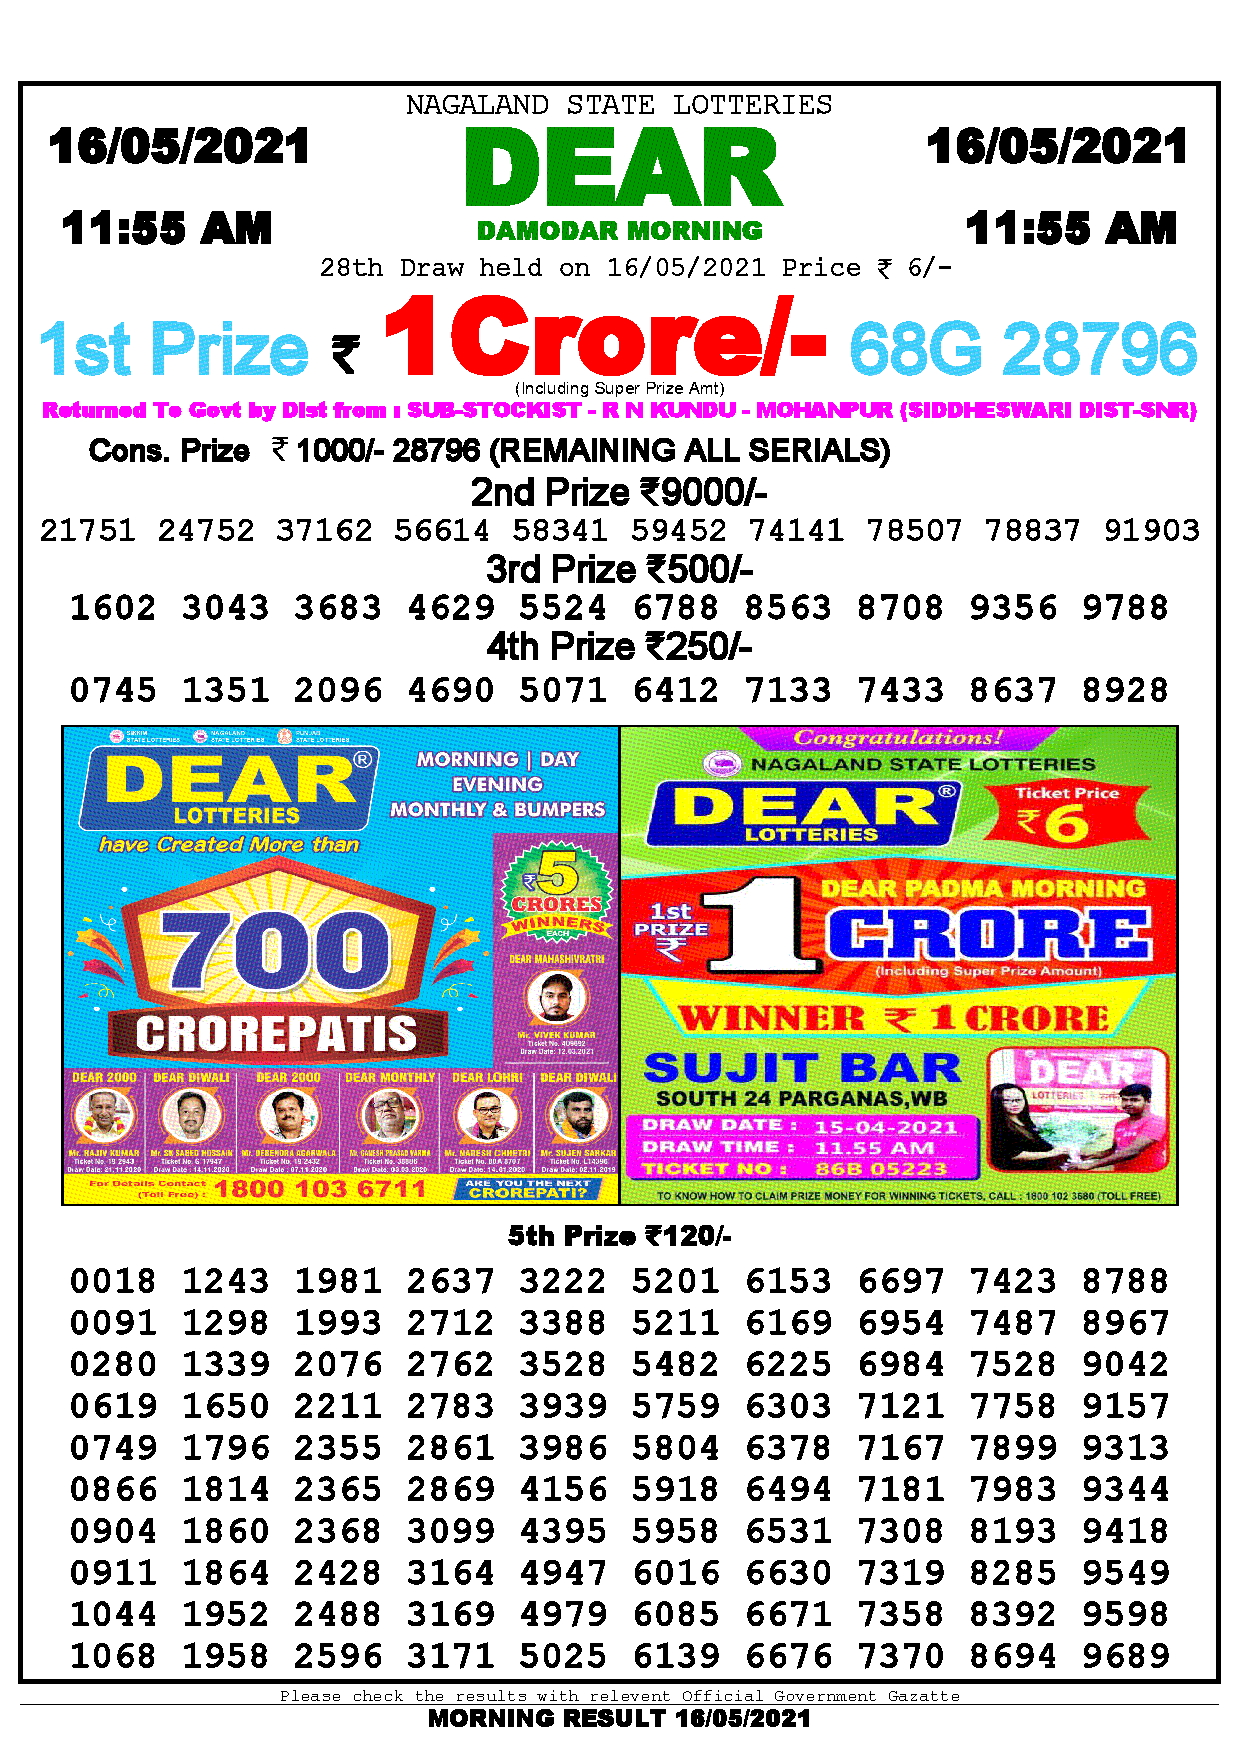 lottery sambad 11:55 am result lottery baba